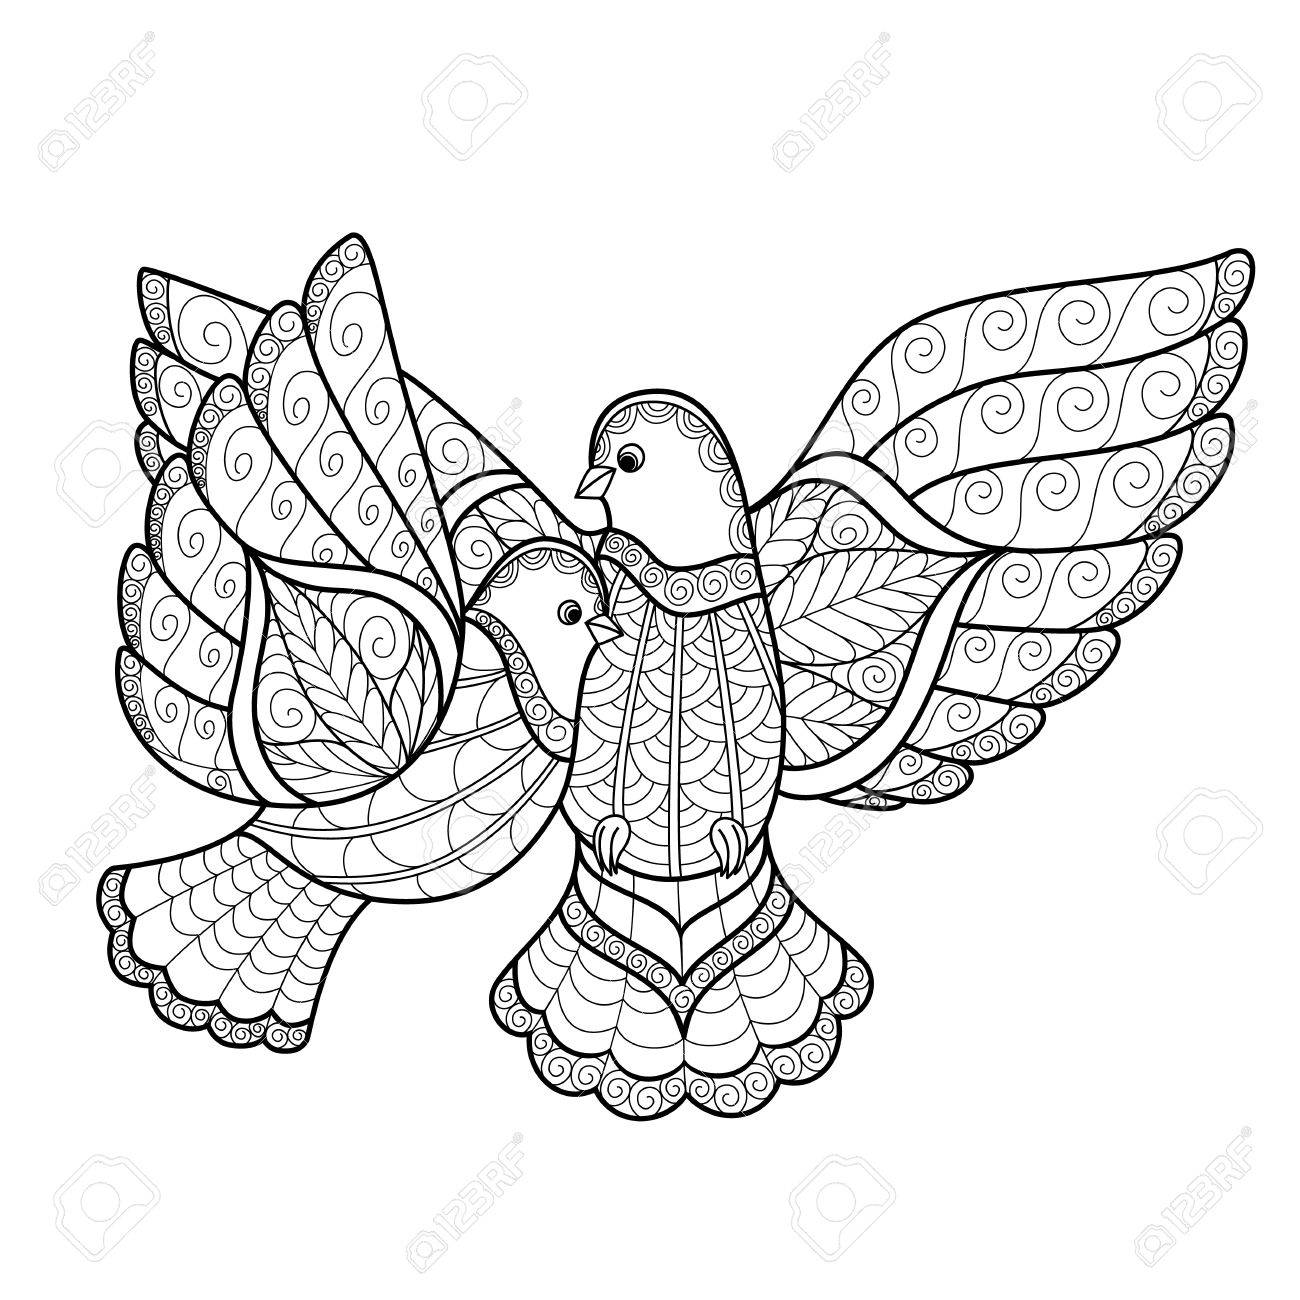 Zentangl Two Stylized Dove Vector Illustration Isolated On White